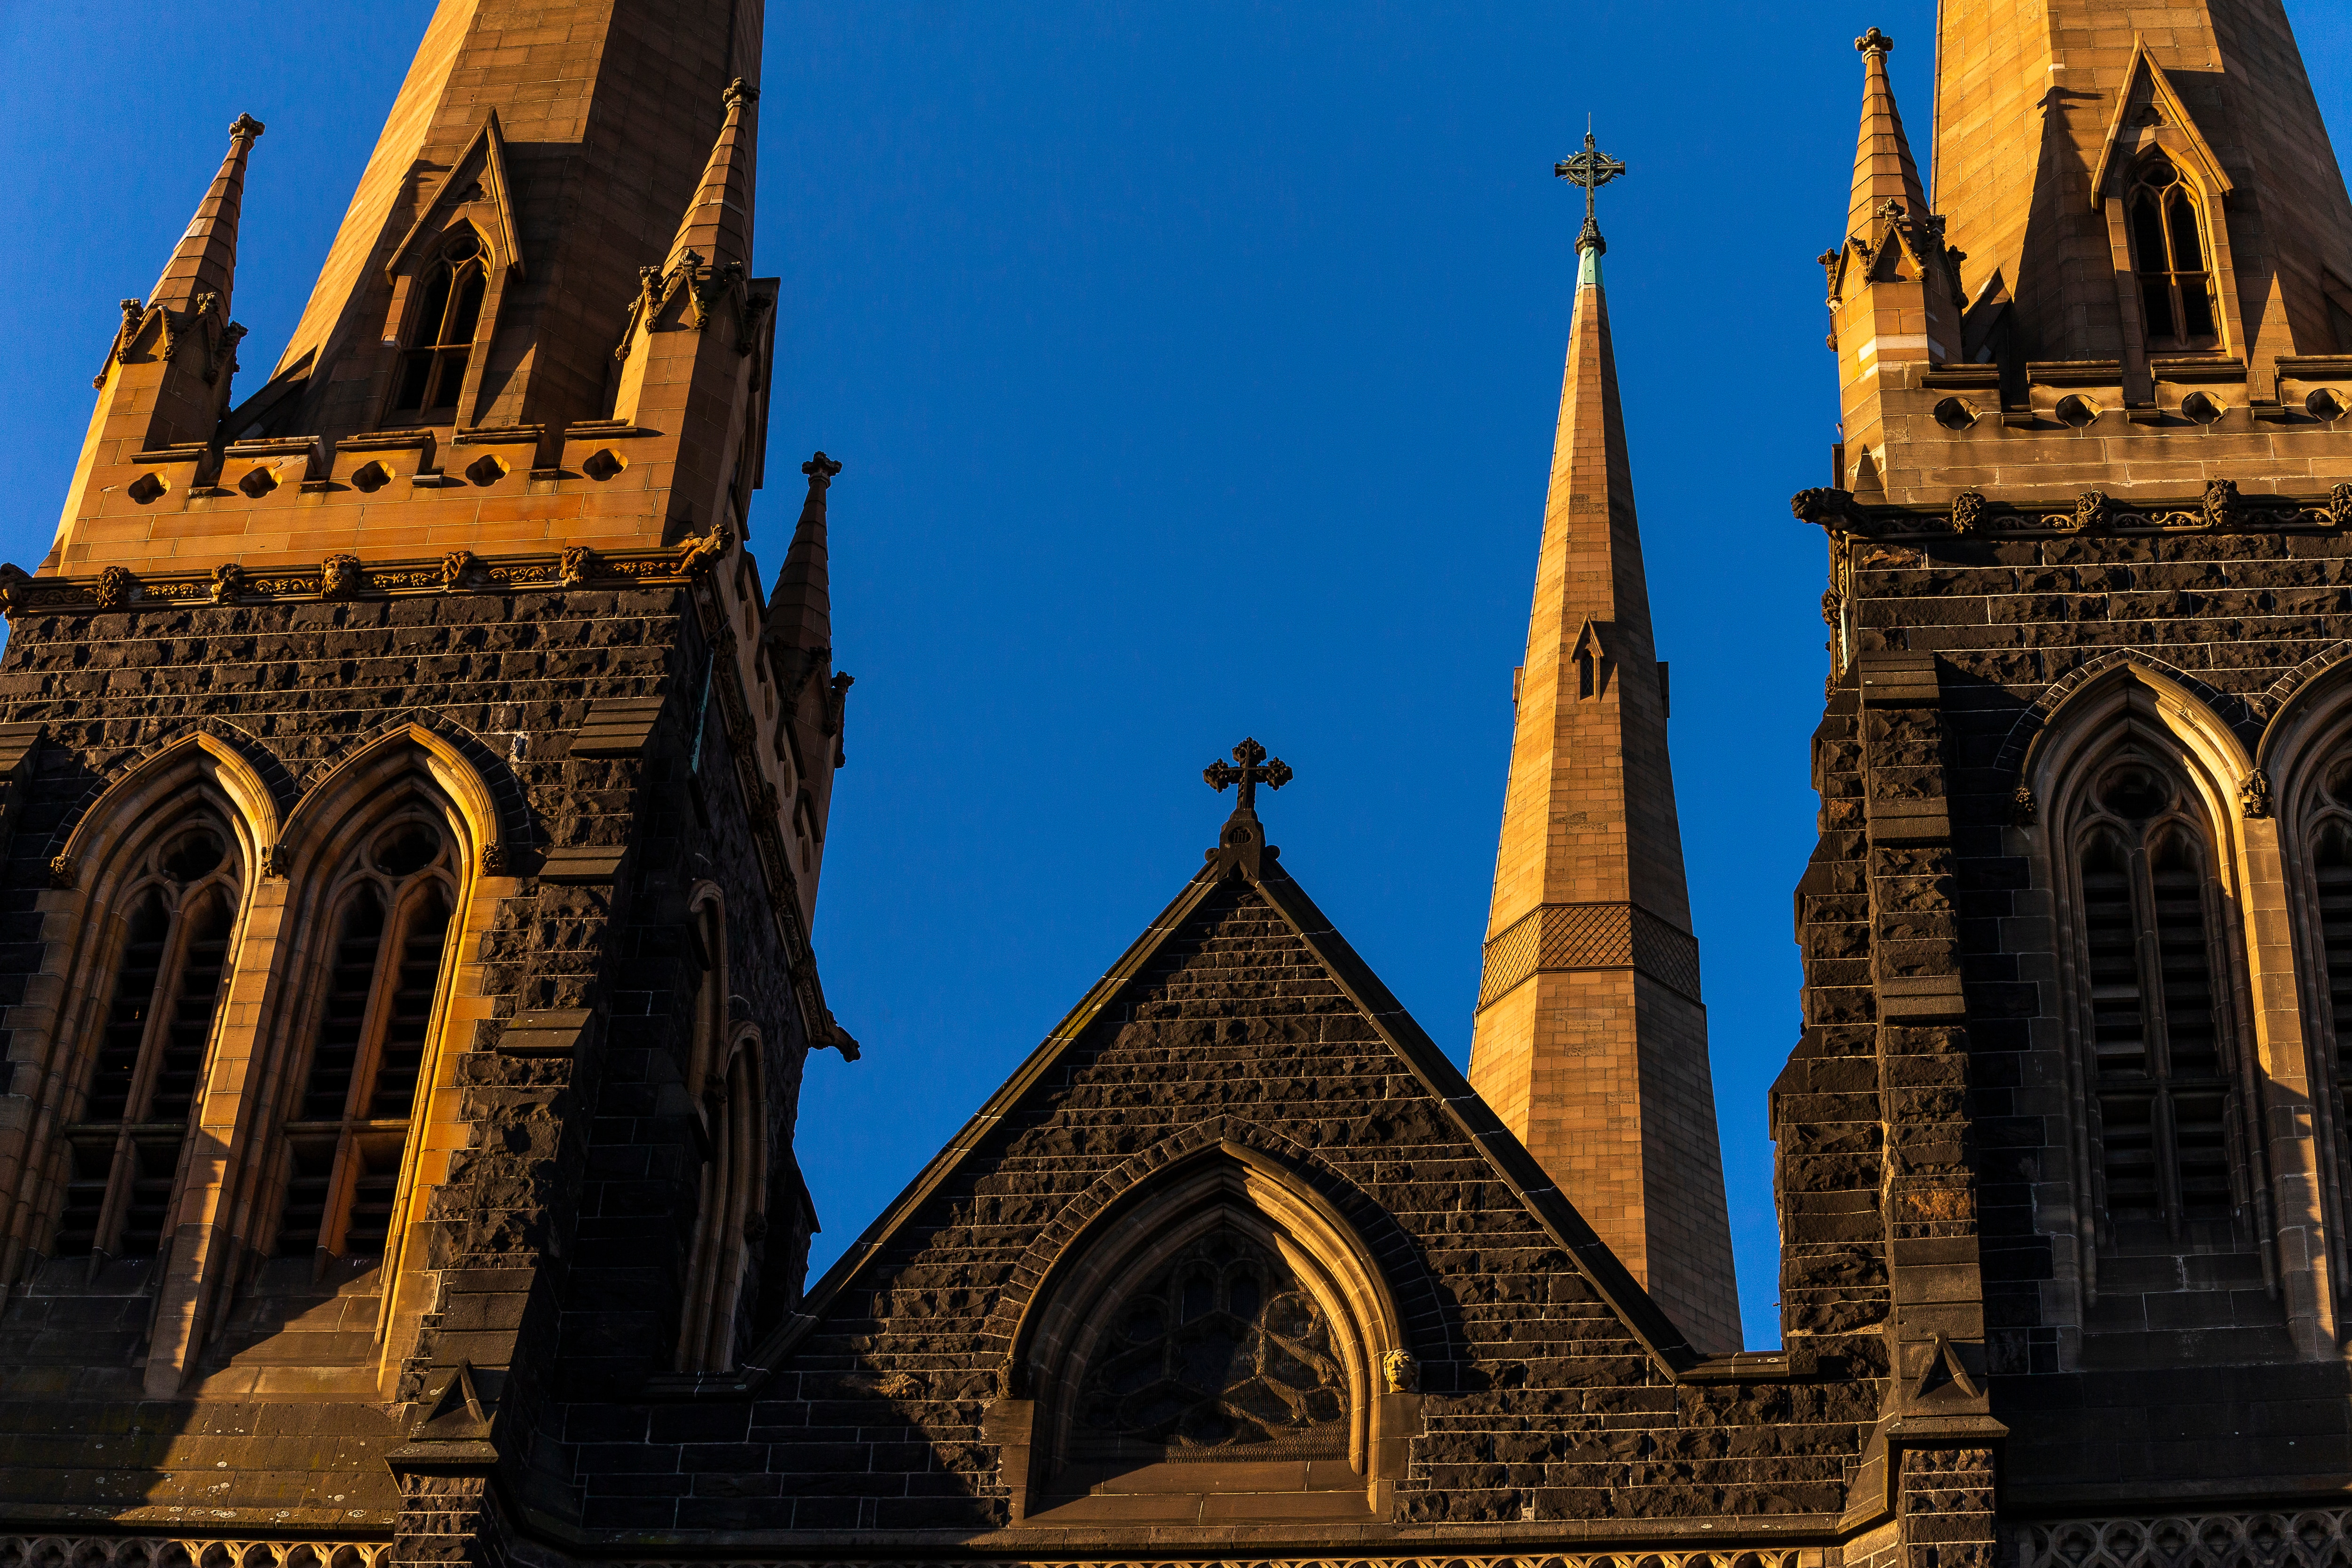 Priests who have been found to withold information relating to child abuse could face jail time.